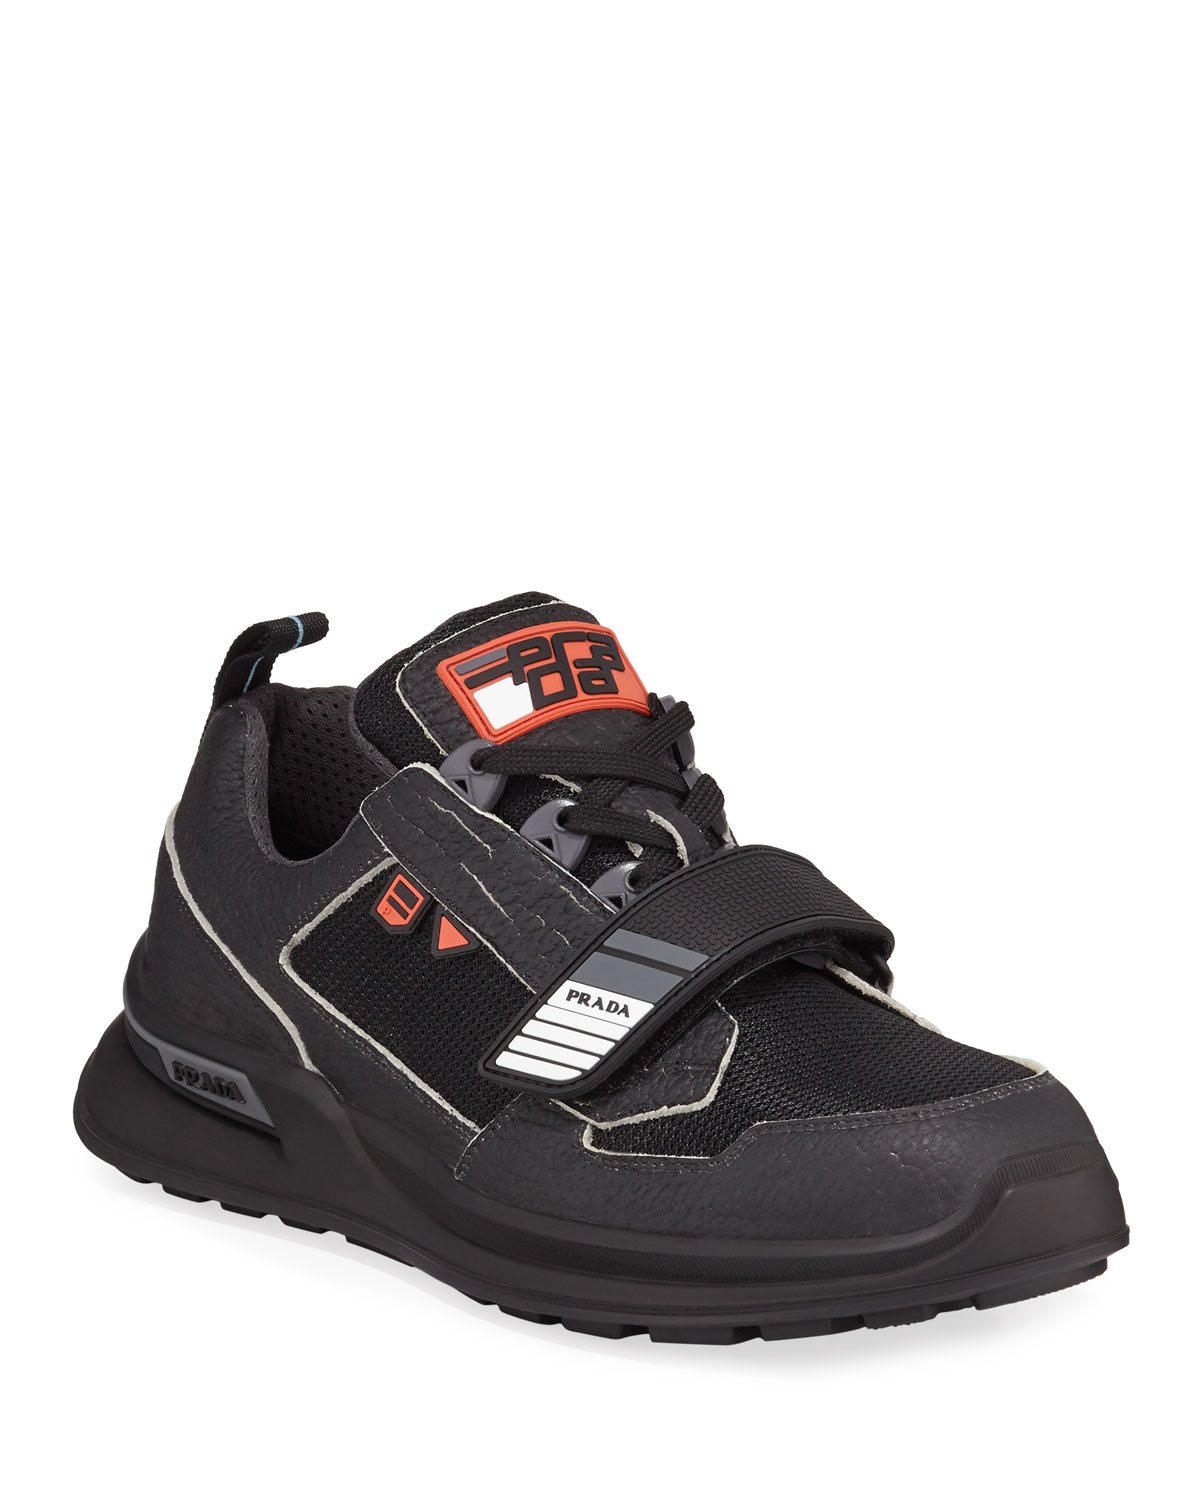 6ed28eff384d5 Prada Men's Vitello Sport Sneakers with Grip-Strap Detail | Neiman ...